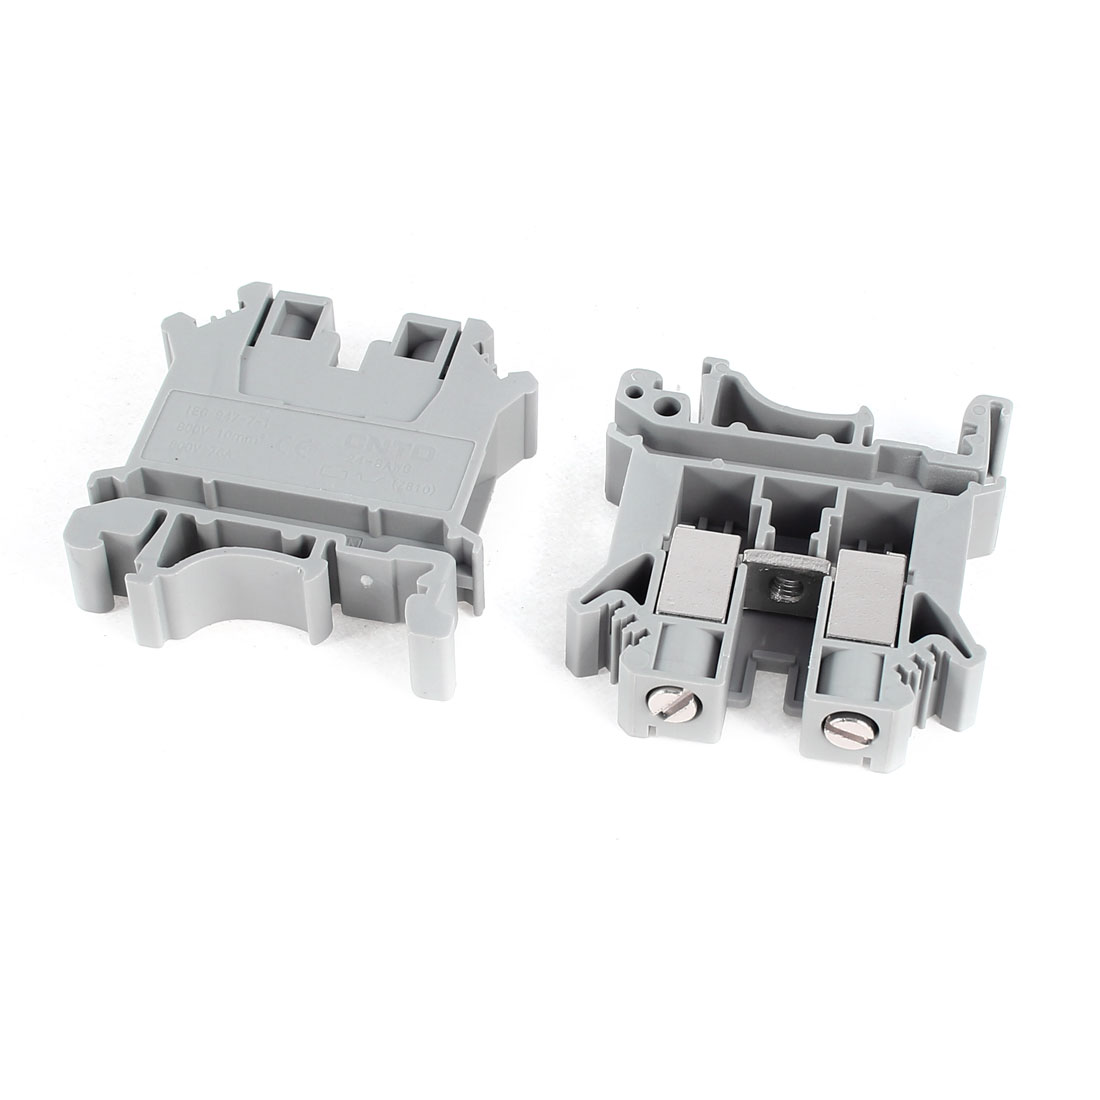 2 Pcs Universal UK10N 800V 76A Electrical DIN Rail Screw Terminal Block